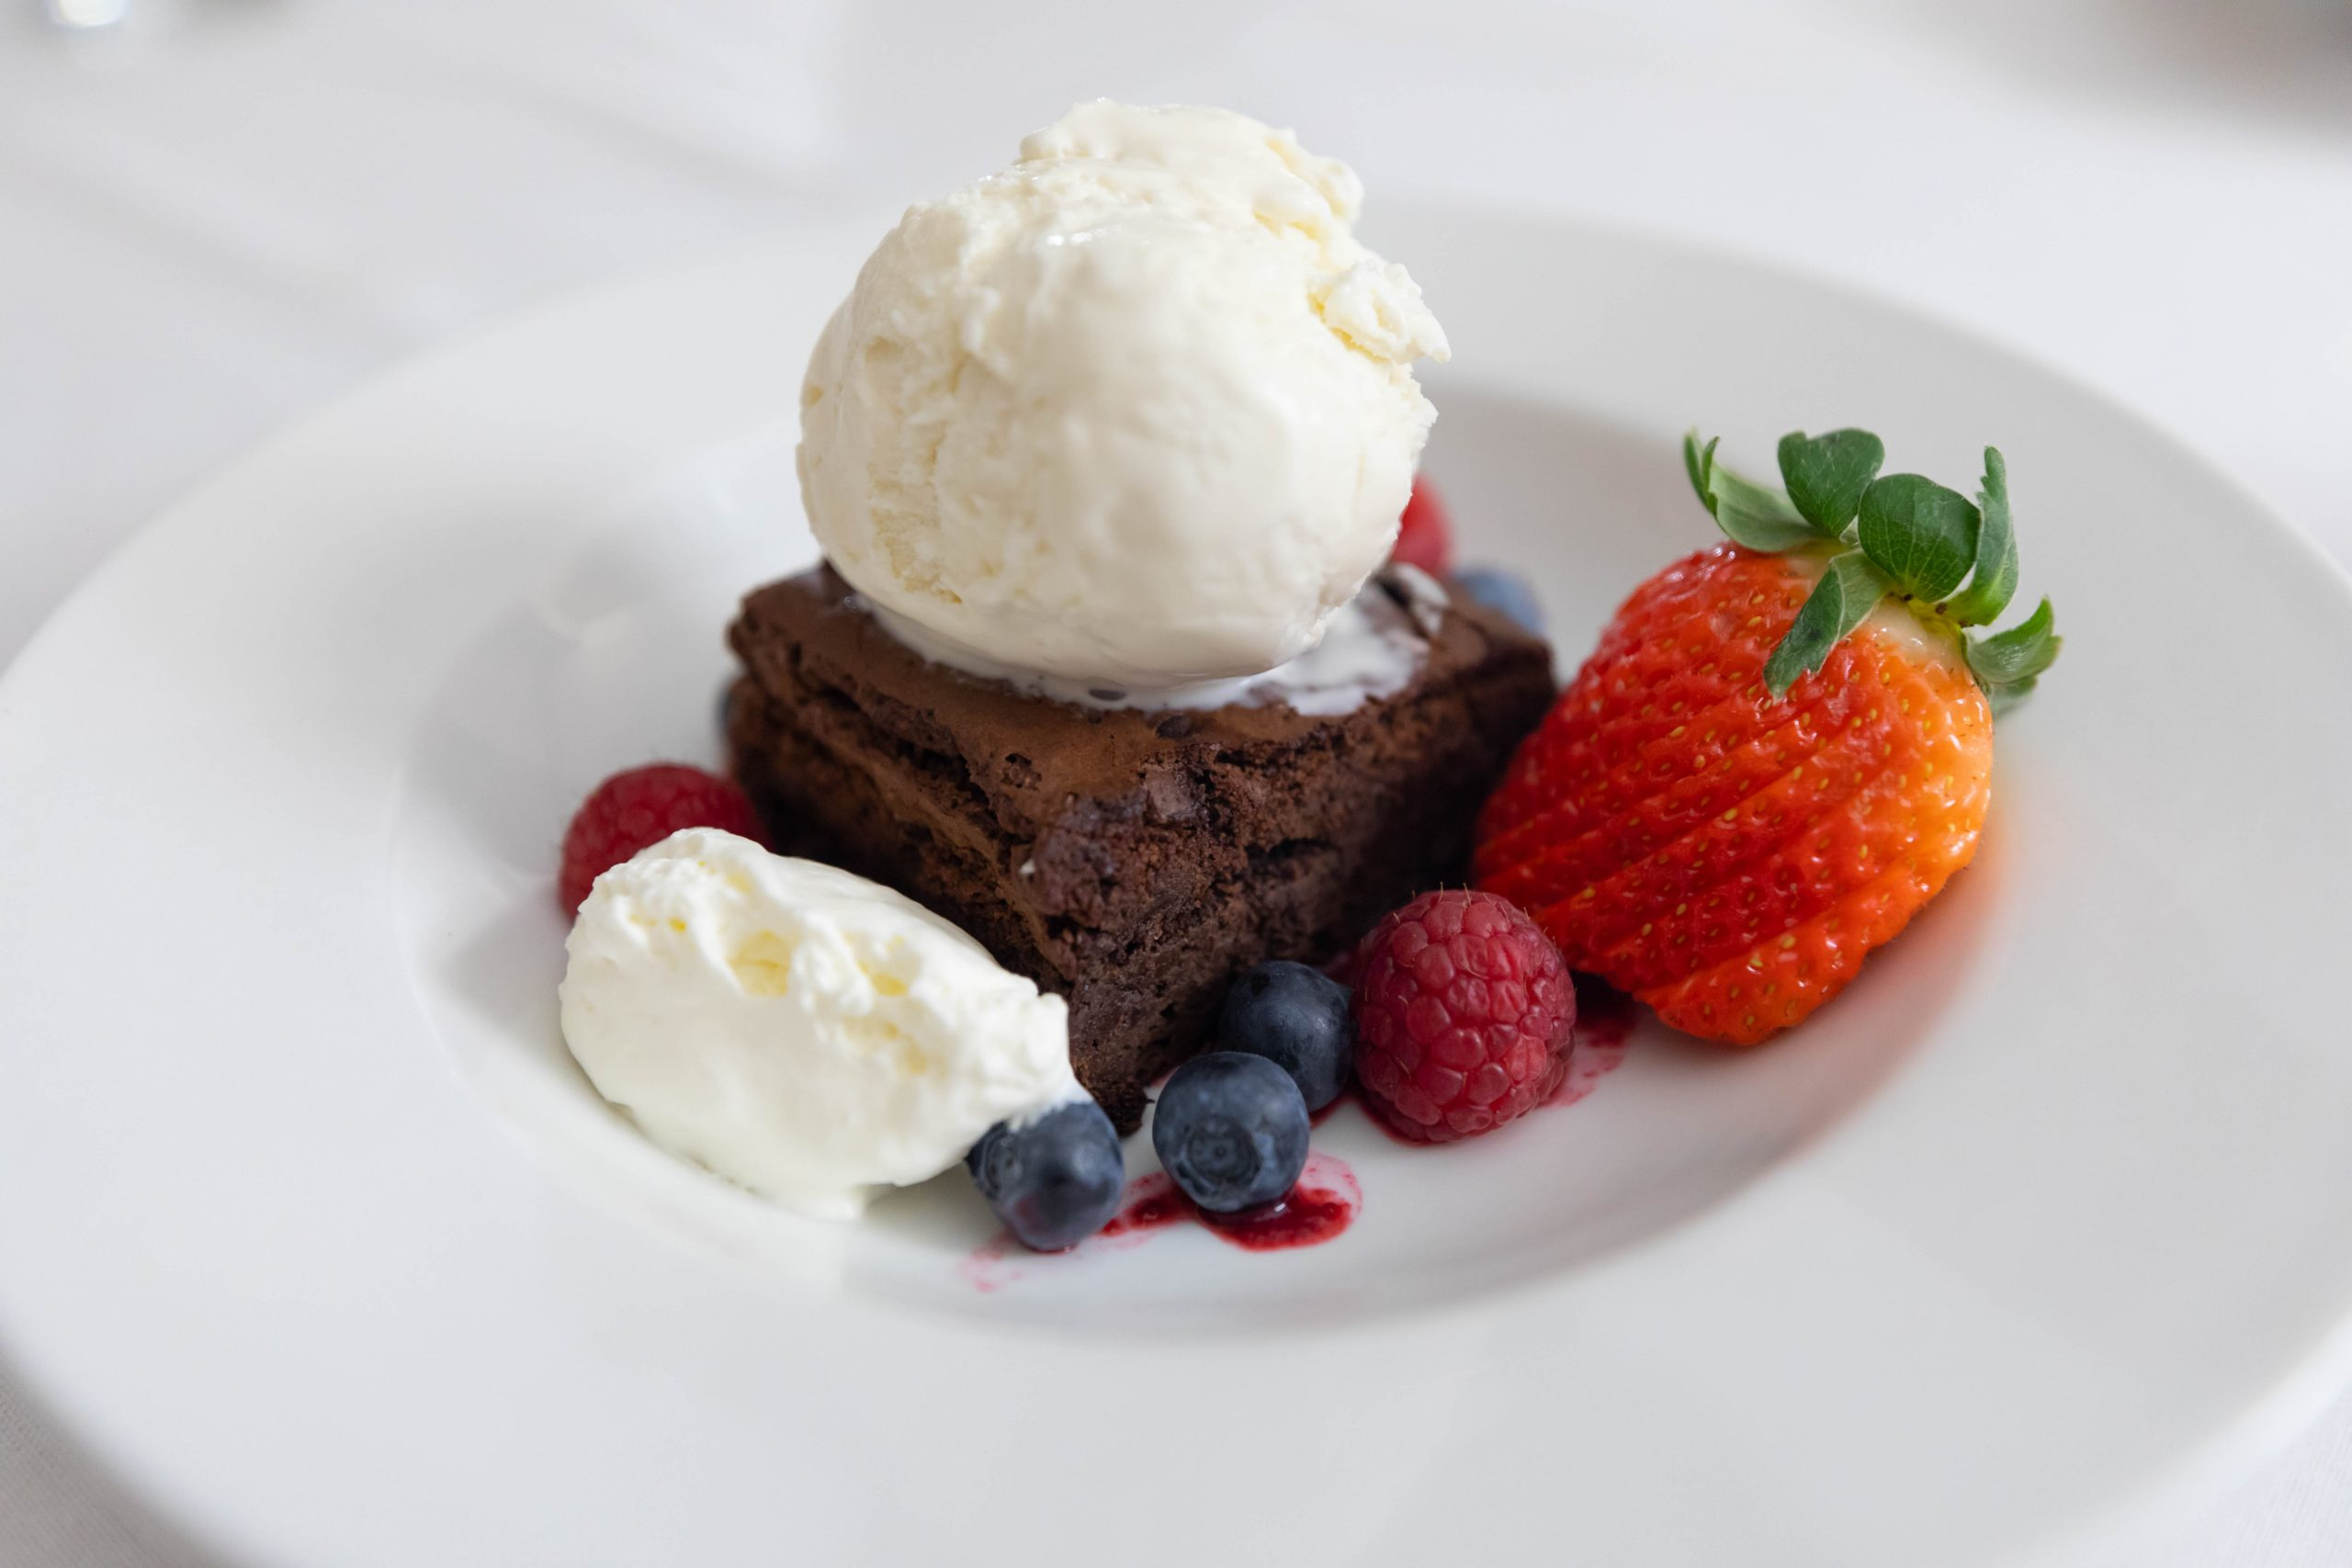 Chocolate Brownie Aerie Restaurant at Grand Traverse Resort & Spa in Acme Traverse City Michigan Photographed by Annie Fairfax Chocolate Brownie with Vanilla Ice Cream and Fresh Berries